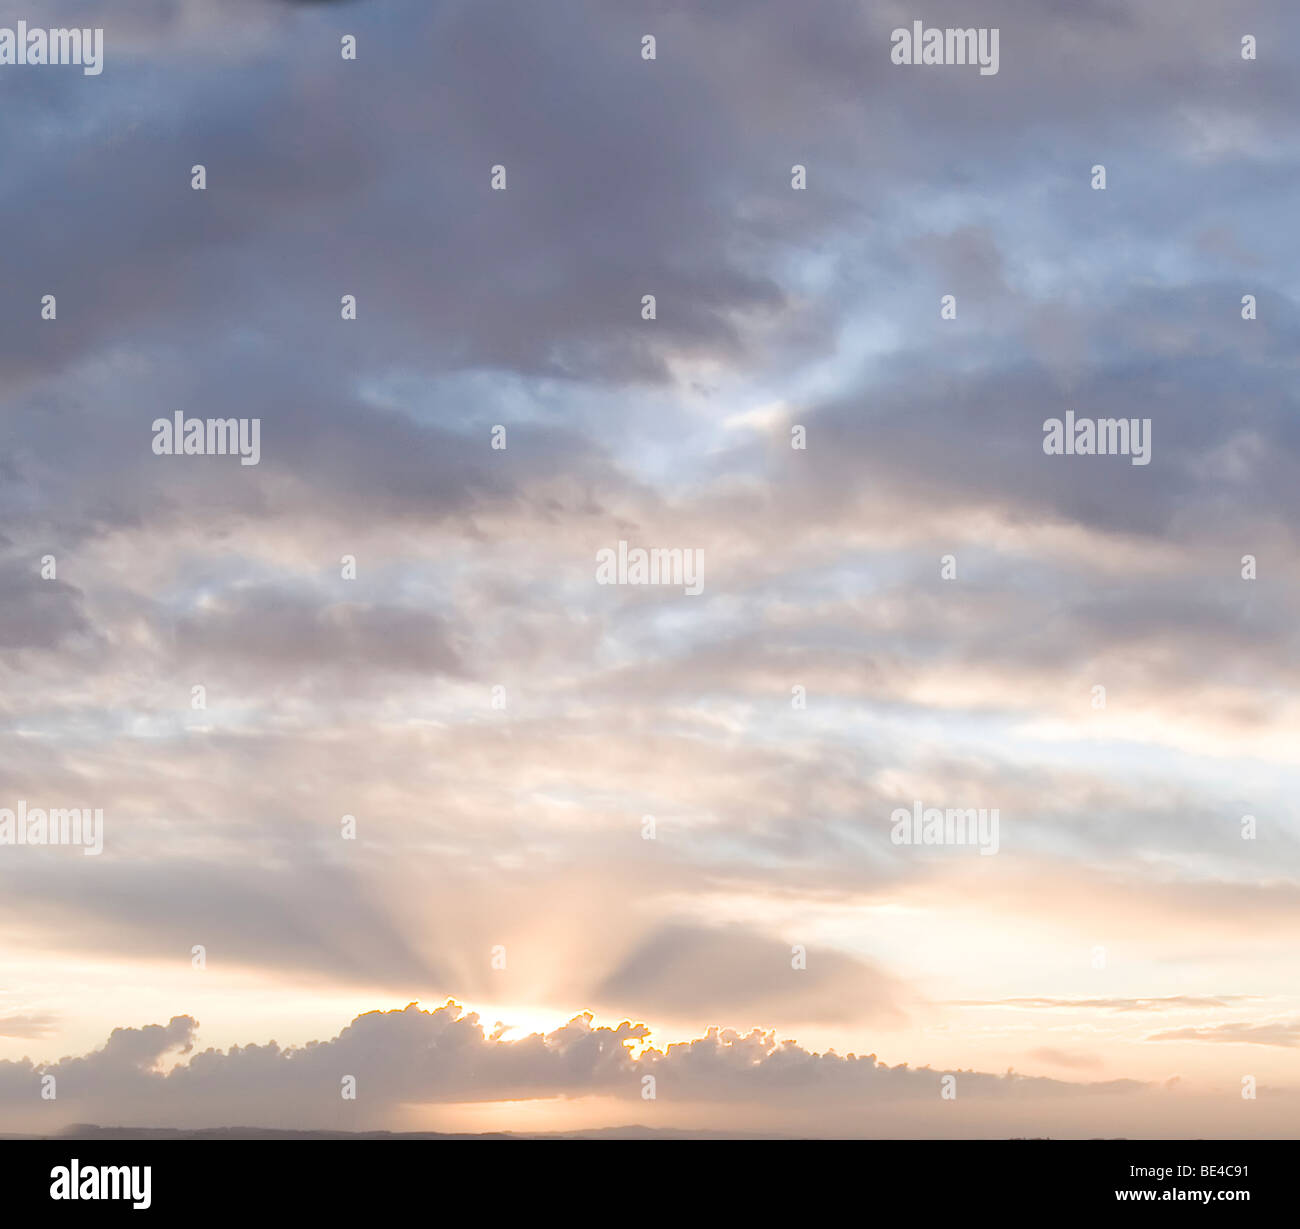 Sunrise/sunset sky with clouds and sun rays/beams - Stock Image